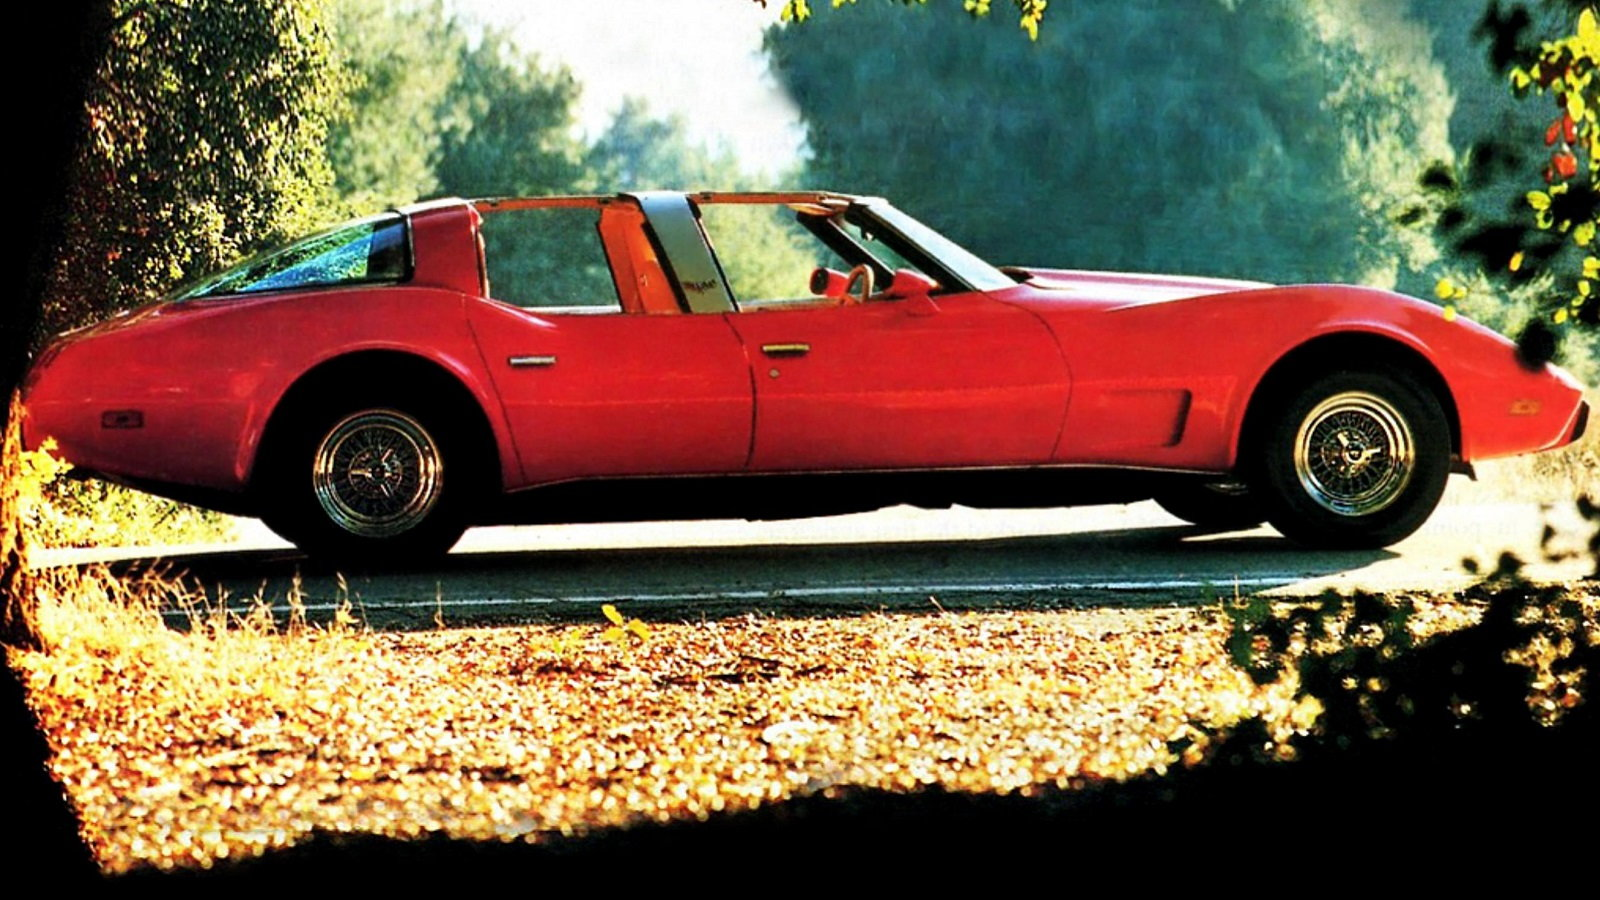 Four Door Corvette, Corvette C3, Conversion